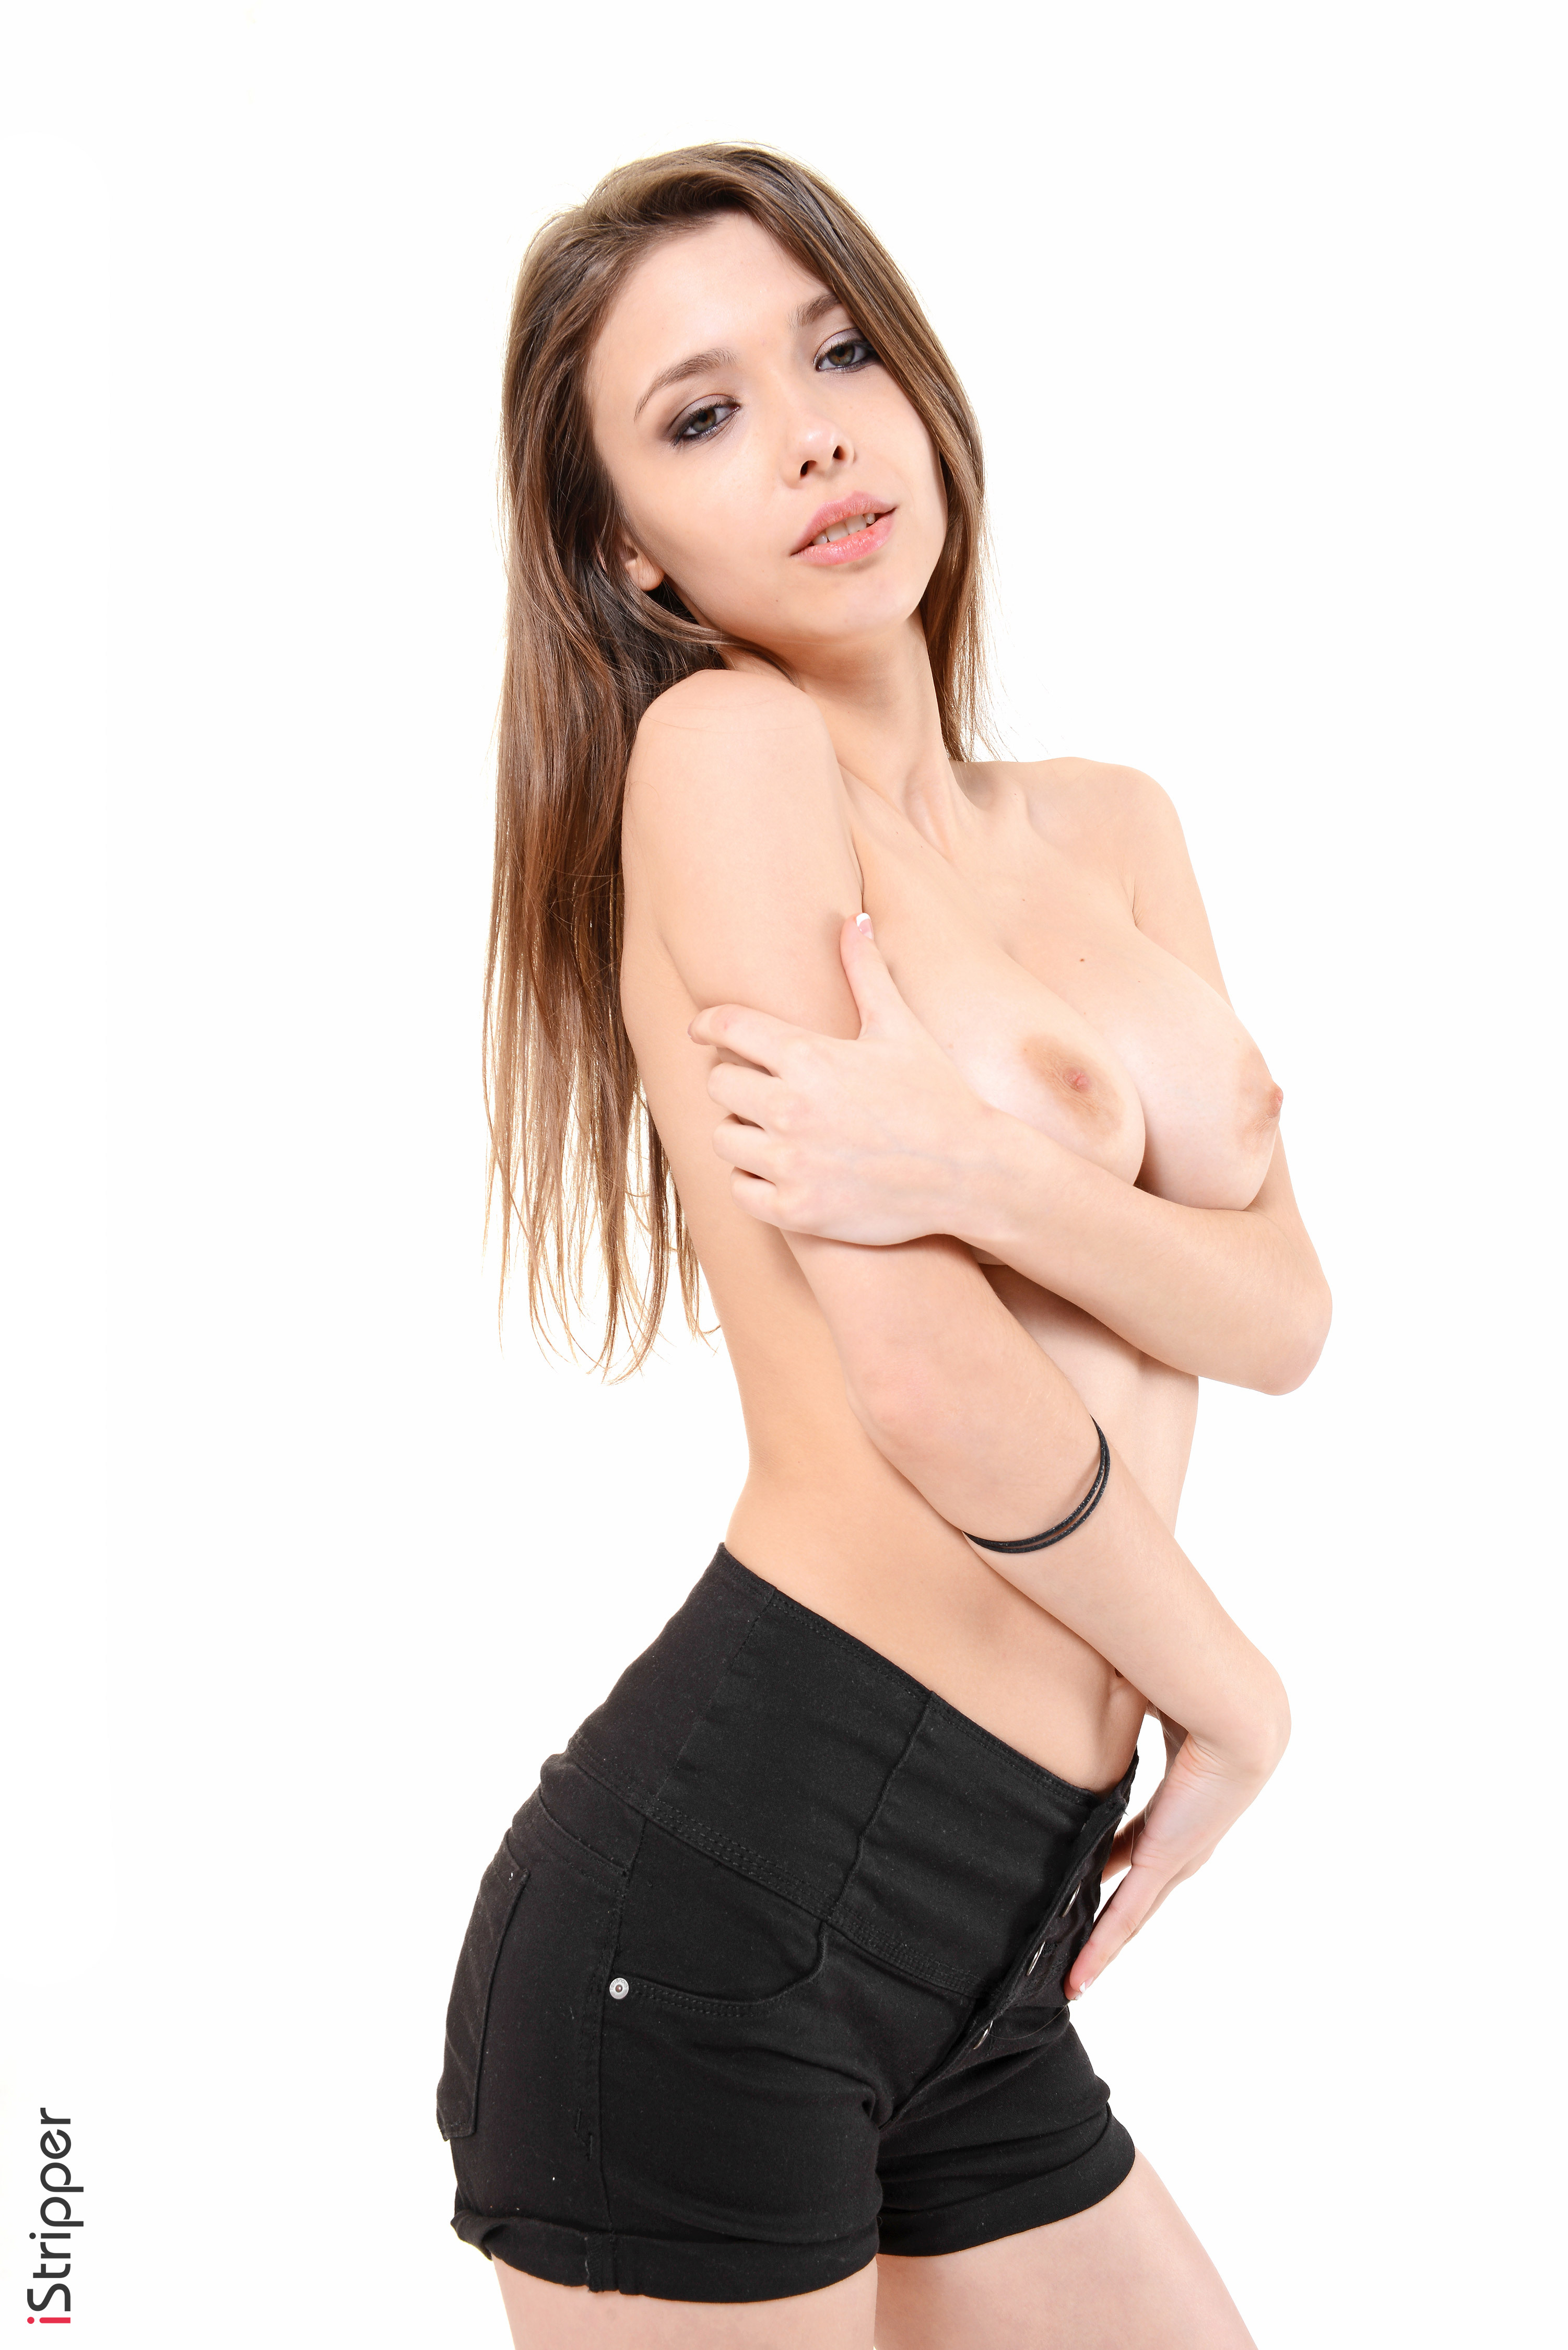 topless girl wallpapers